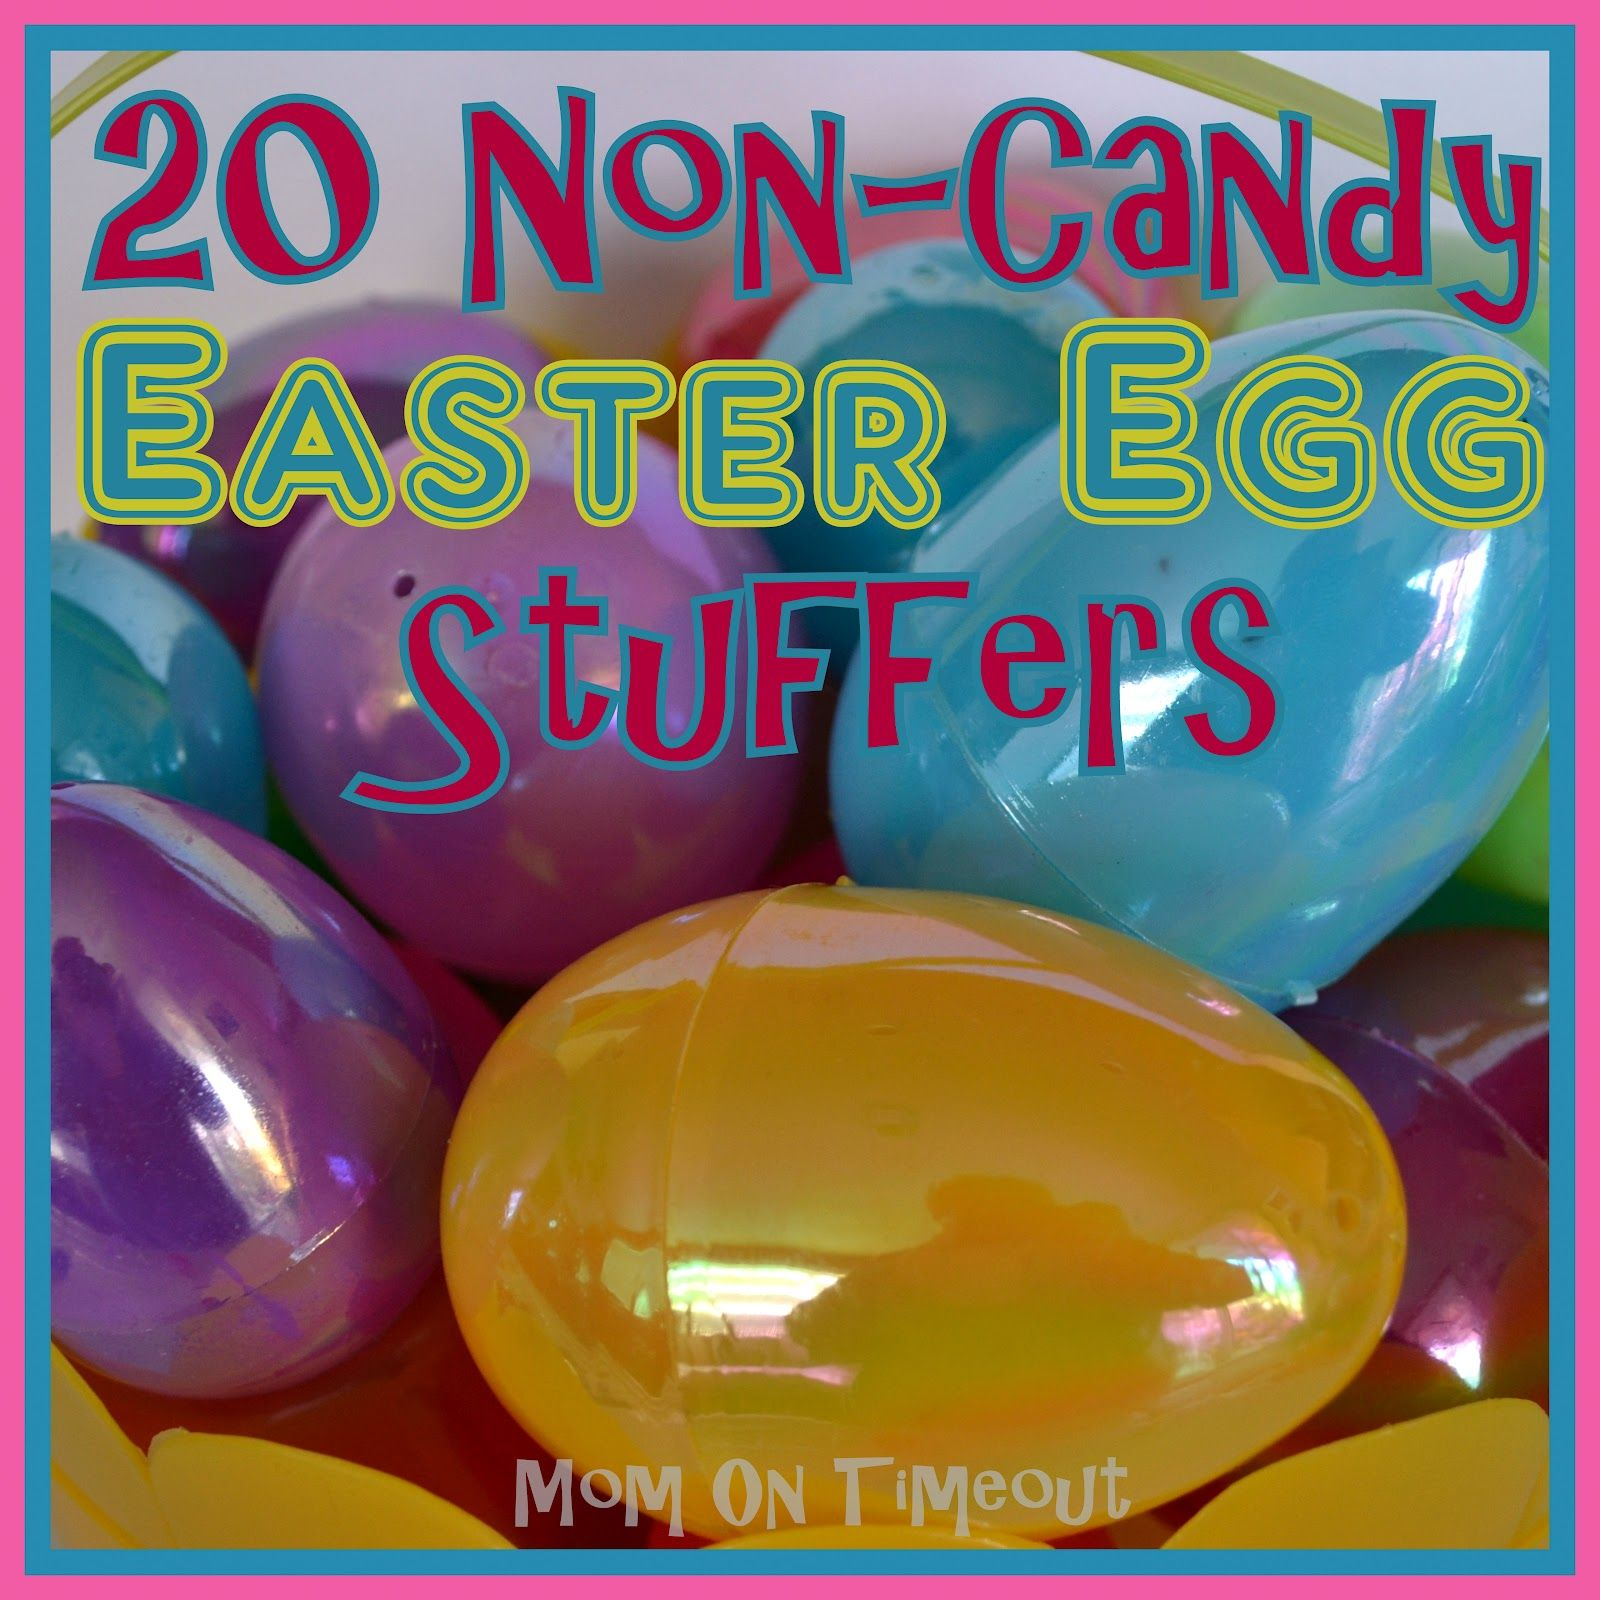 20 non candy easter egg stuffer ideas for madeleine sophie non candy easter egg stuffer ideas mom on timeout ideas for all ages negle Choice Image